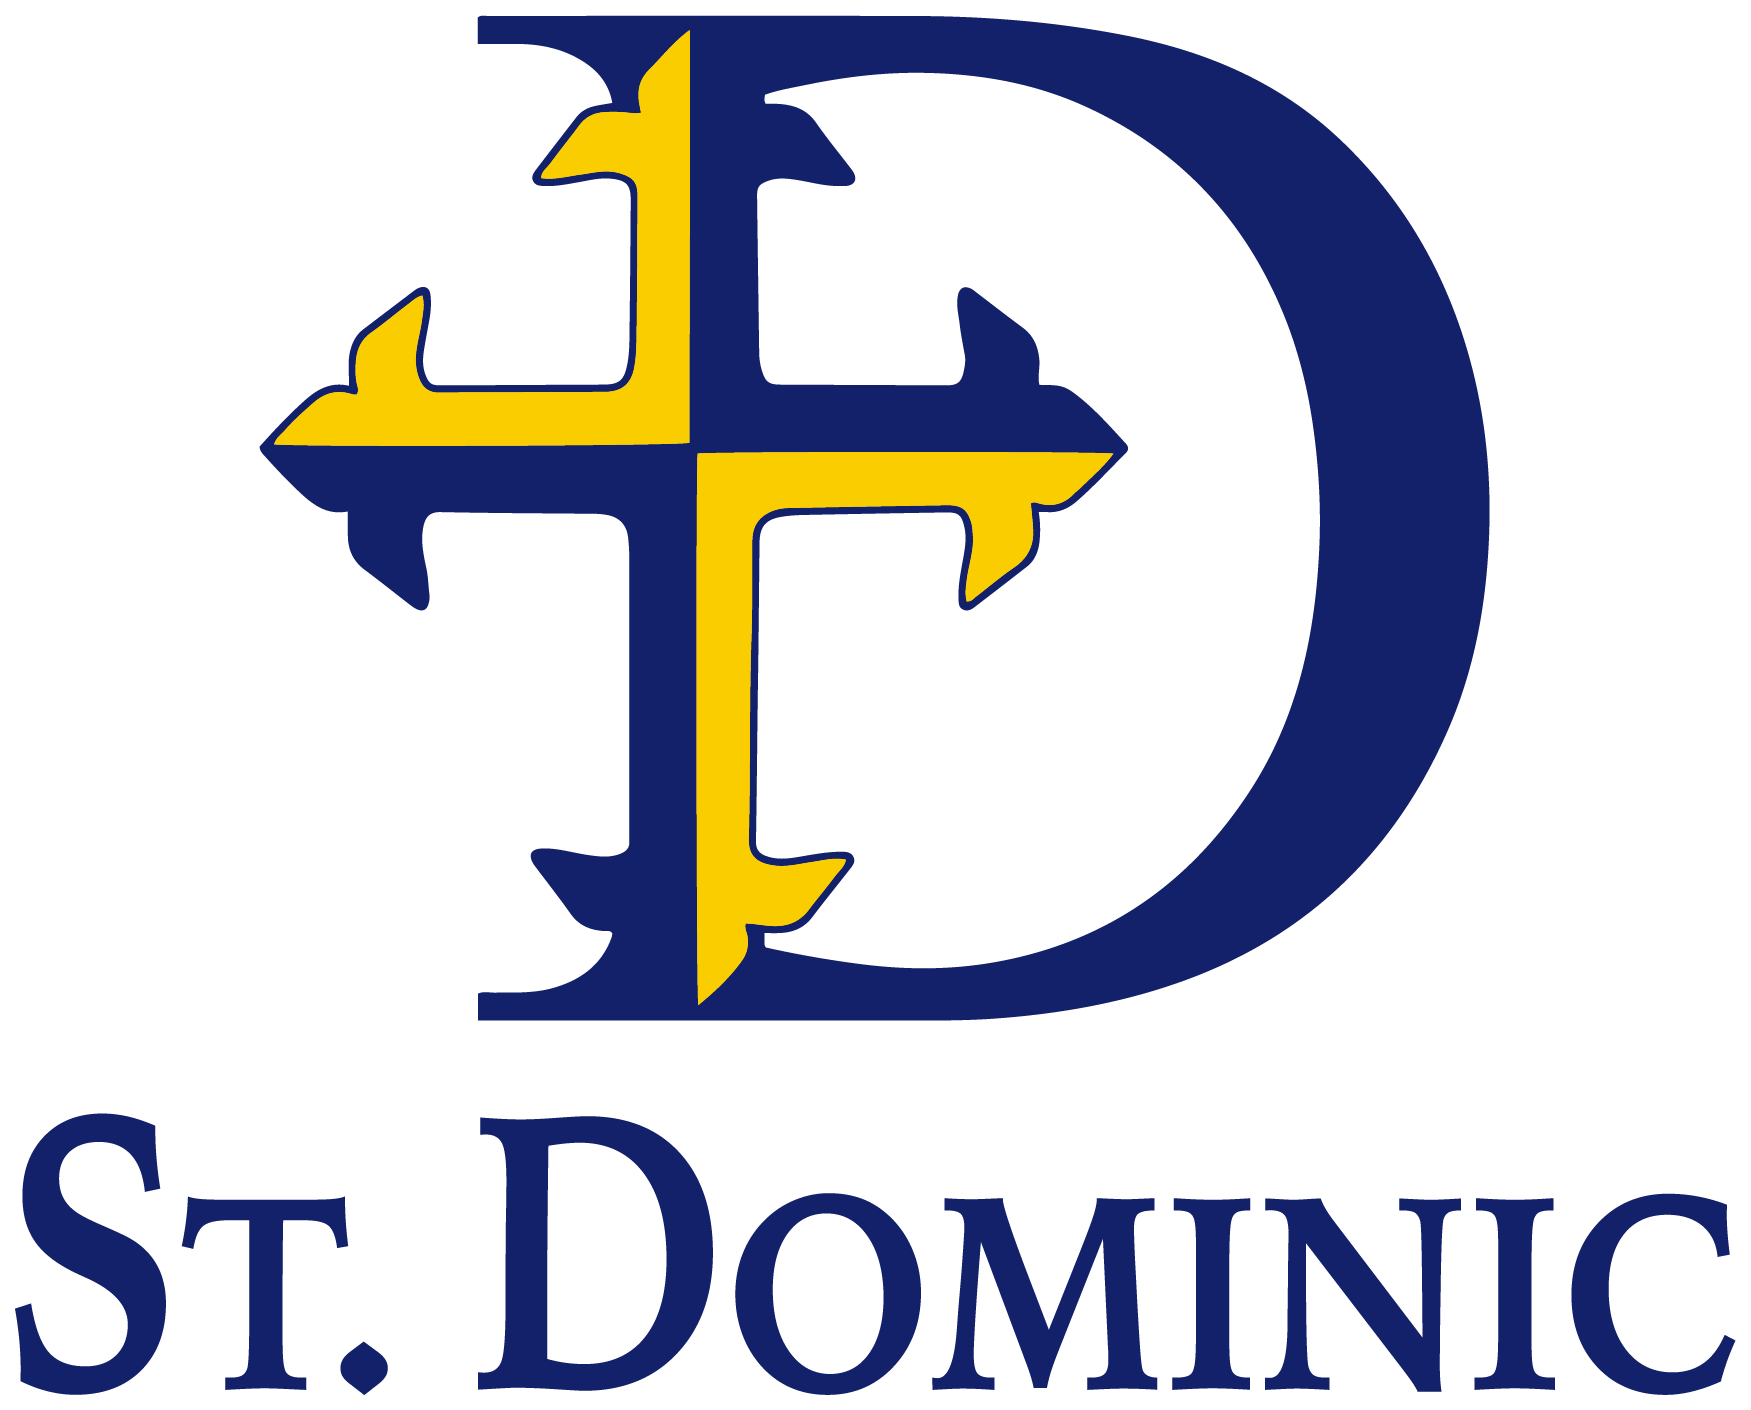 St. Dominic Web Store